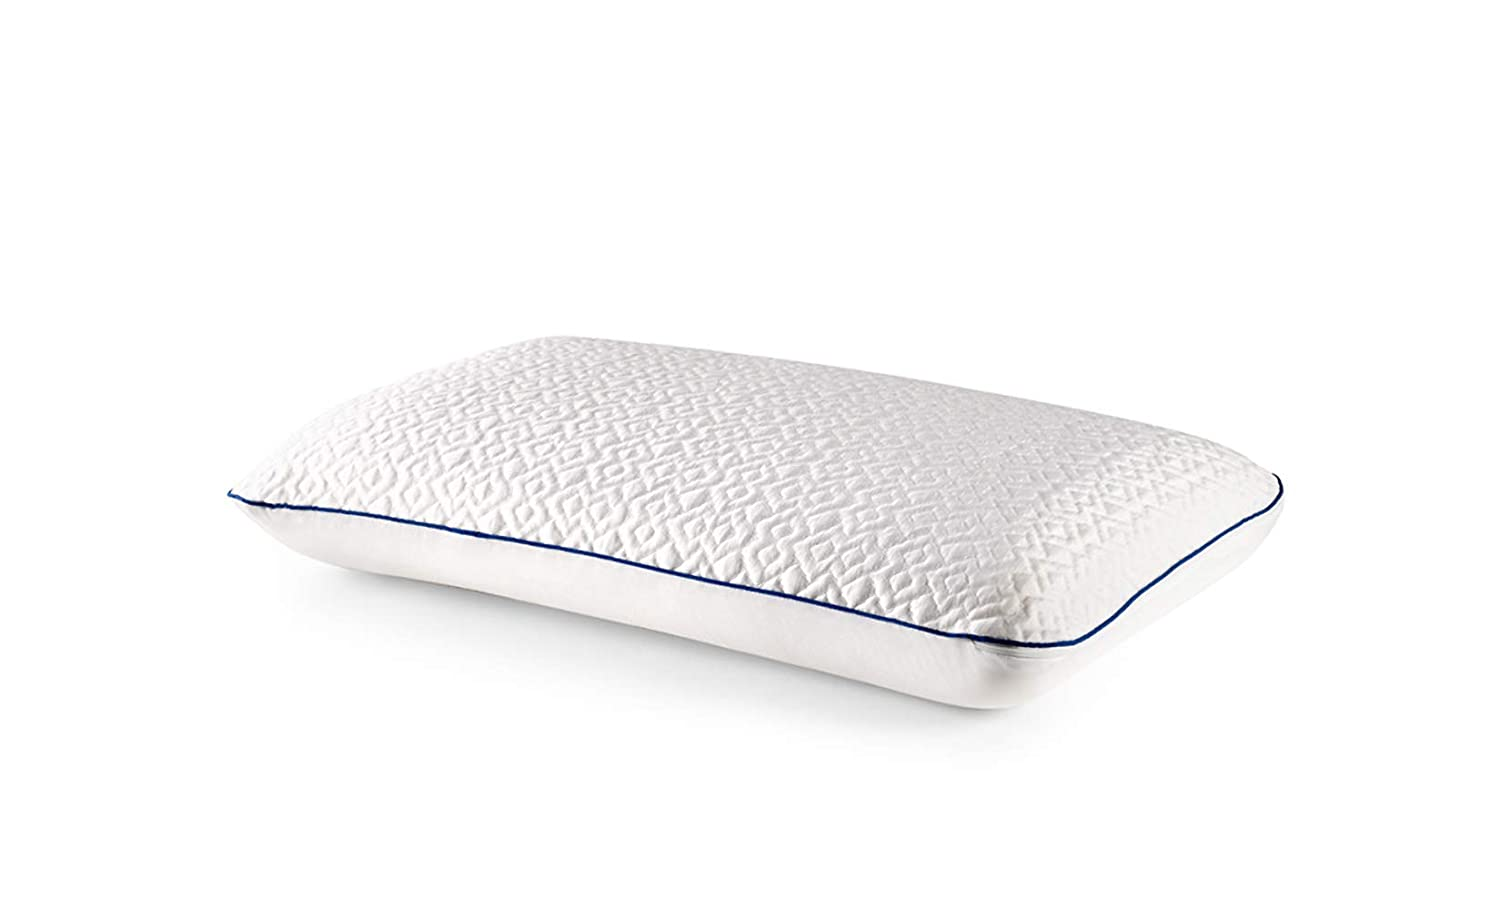 Revel CustomFeel Reversible Memory Foam Pillow with Dual Cooling Action (Queen), Made in the USA with a 5-Year Warranty, Amazon Exclusive